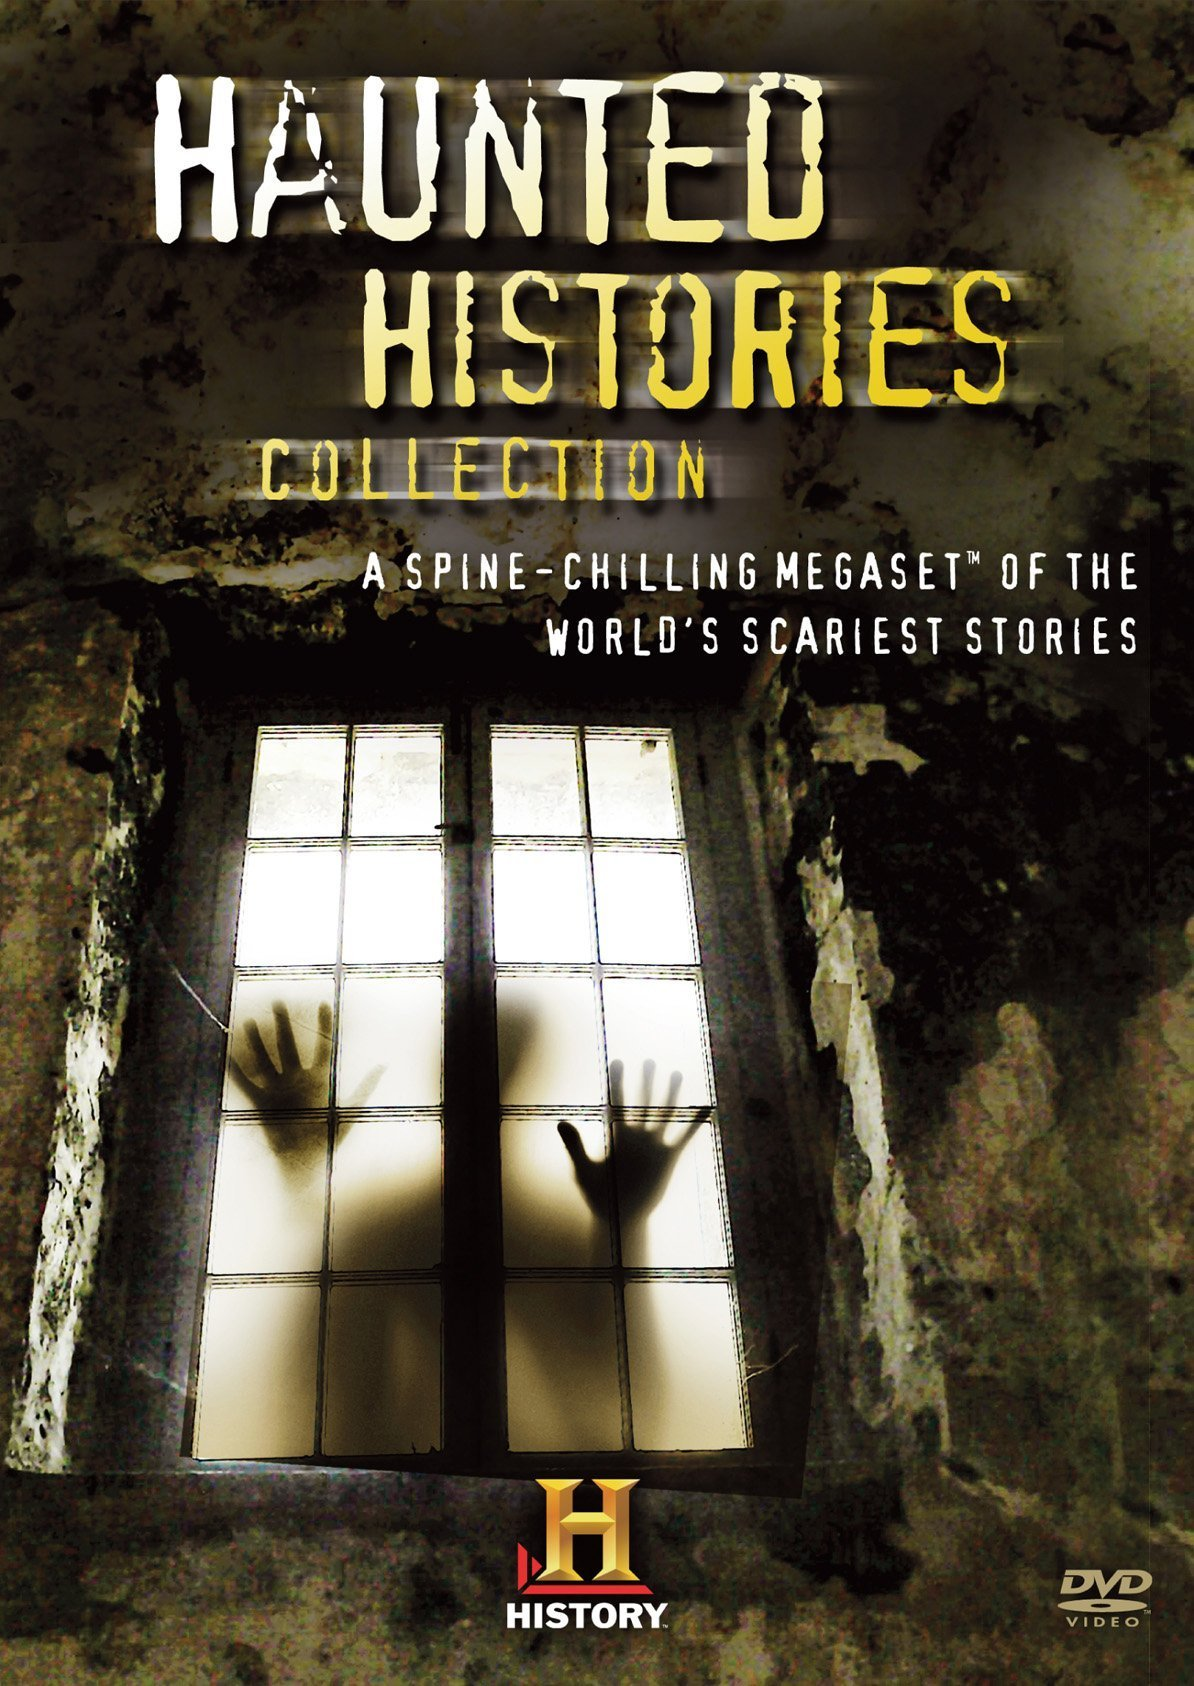 Haunted Histories Collection Megaset by A&E